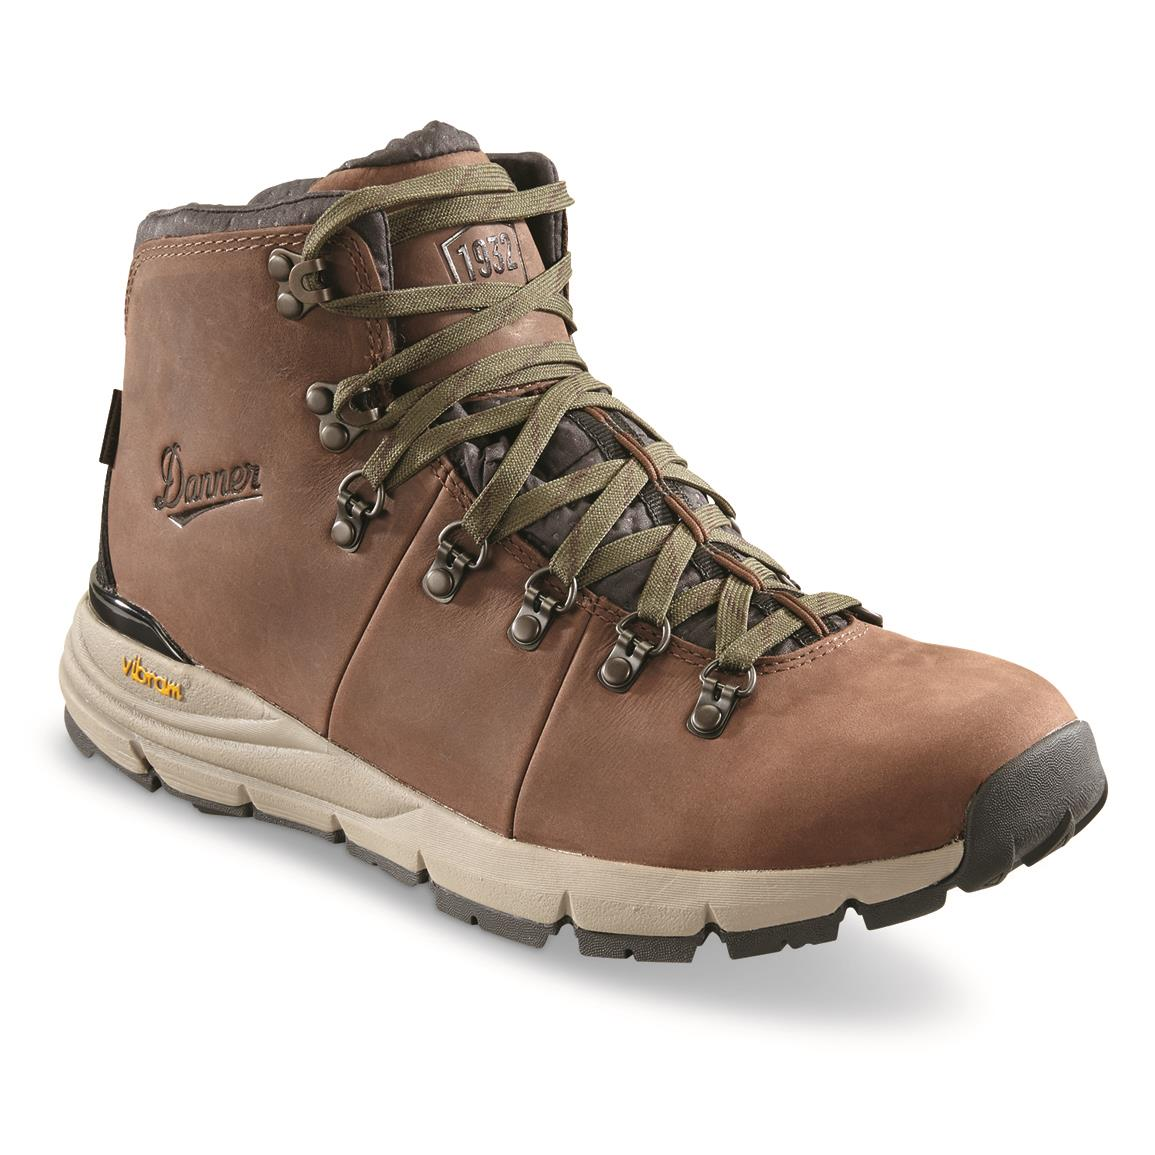 Danner Men's Mountain 600 Waterproof Hiking Boots, Full Grain Leather, Walnut/green